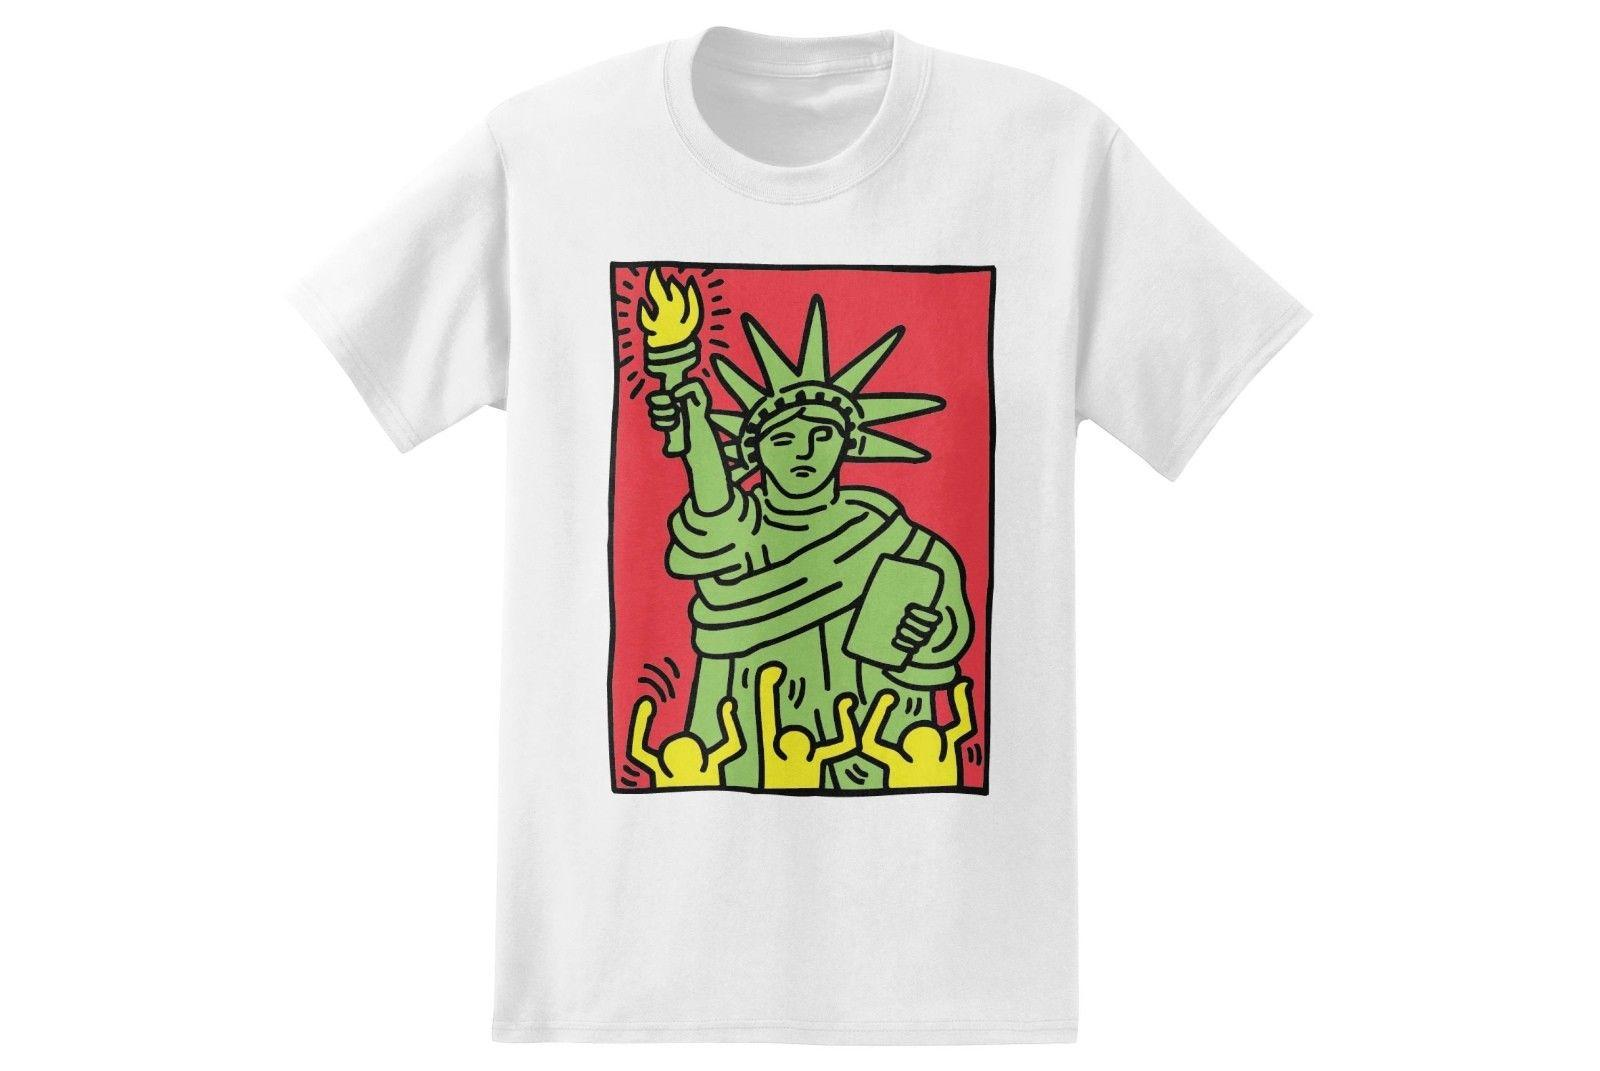 Keith Haring STATUE OF LIBERTY Pop Art T Shirt NWT 100% Authentic Rare Tee  S 2XL Really Funny T Shirts Funny Vintage T Shirts From Playfulltees 565c38b5d